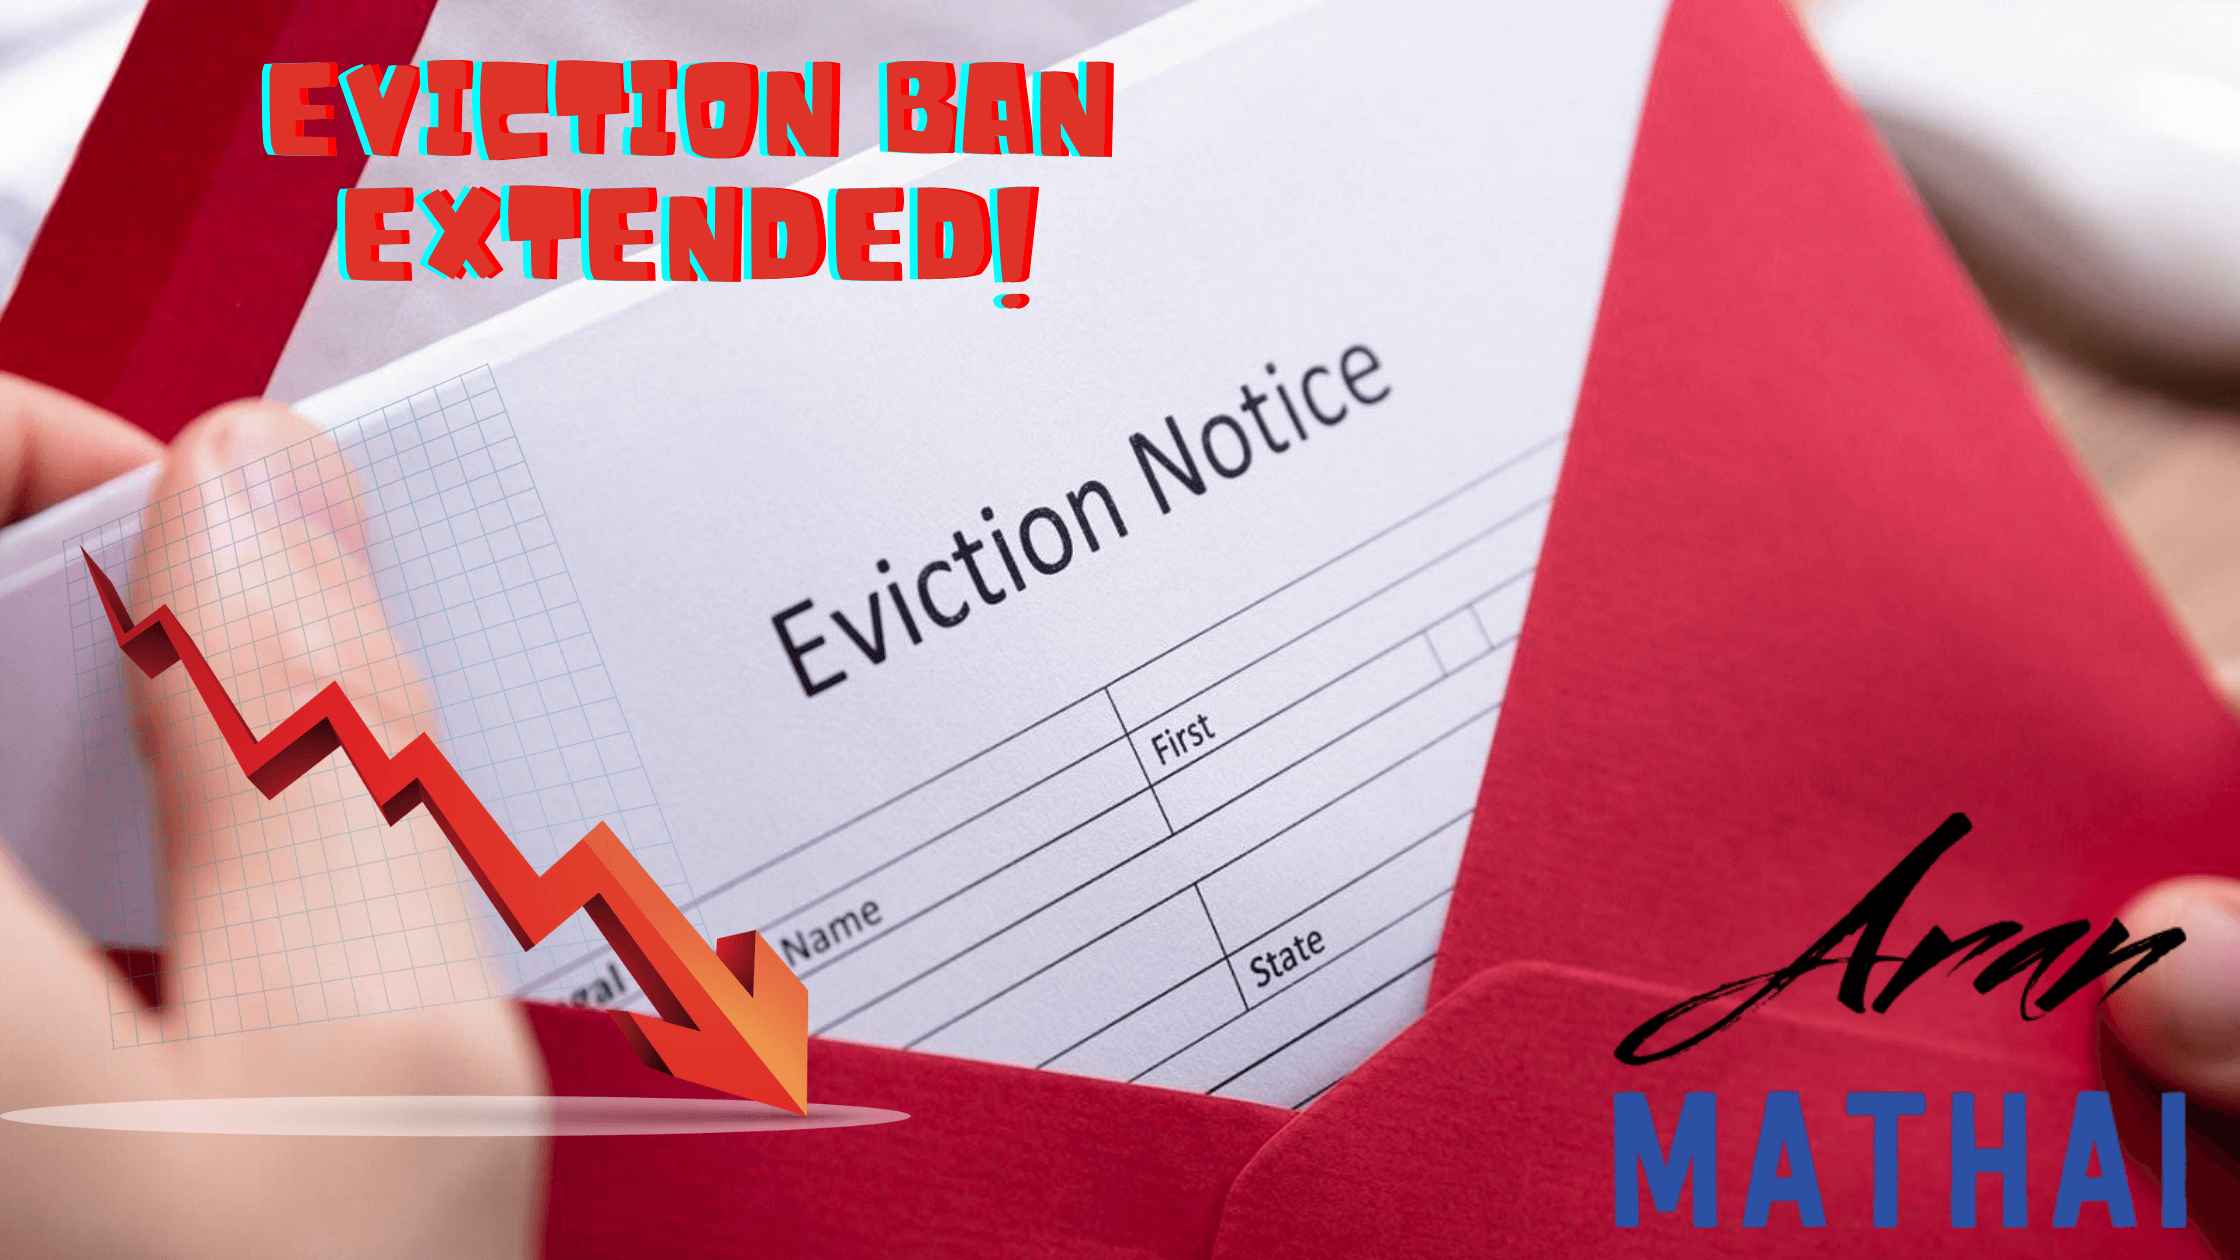 Eviction Ban Extended!